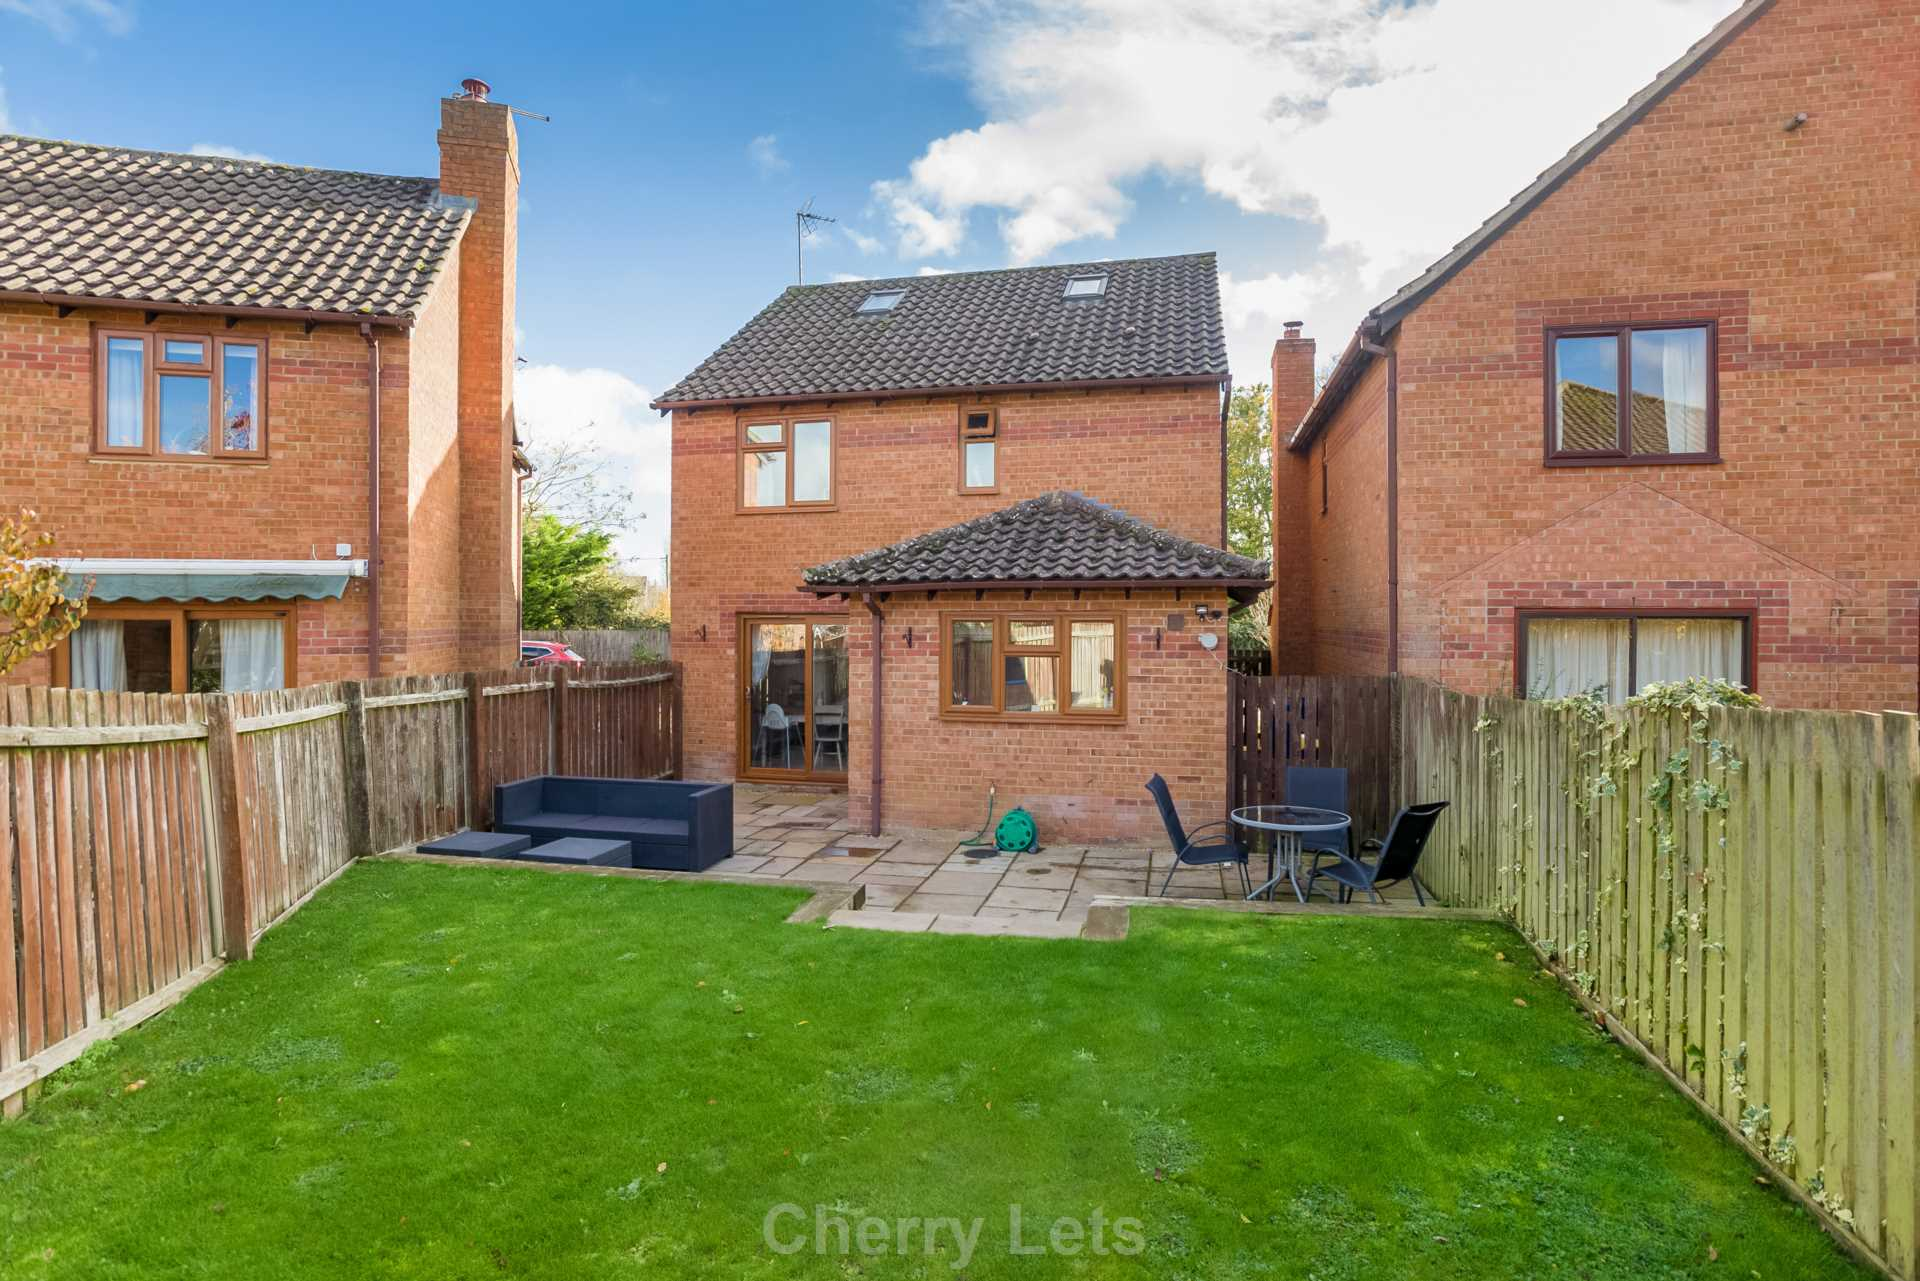 3 bed detached house to rent in Mill Close, Deddington, OX15 15